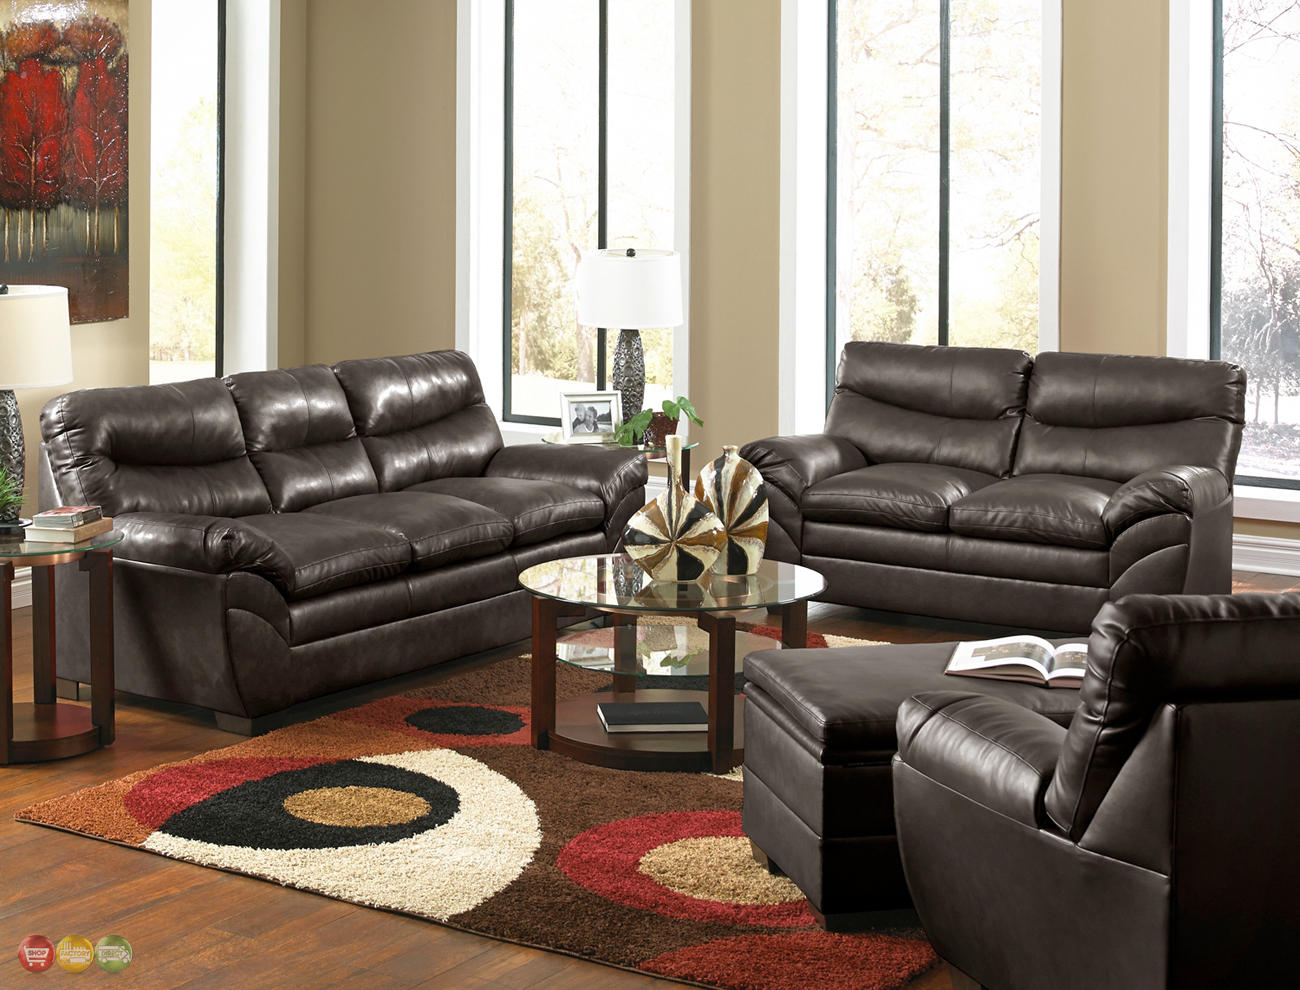 Casual Contemporary Brown Bonded Leather Sofa Set Living Room Furniture Simmo